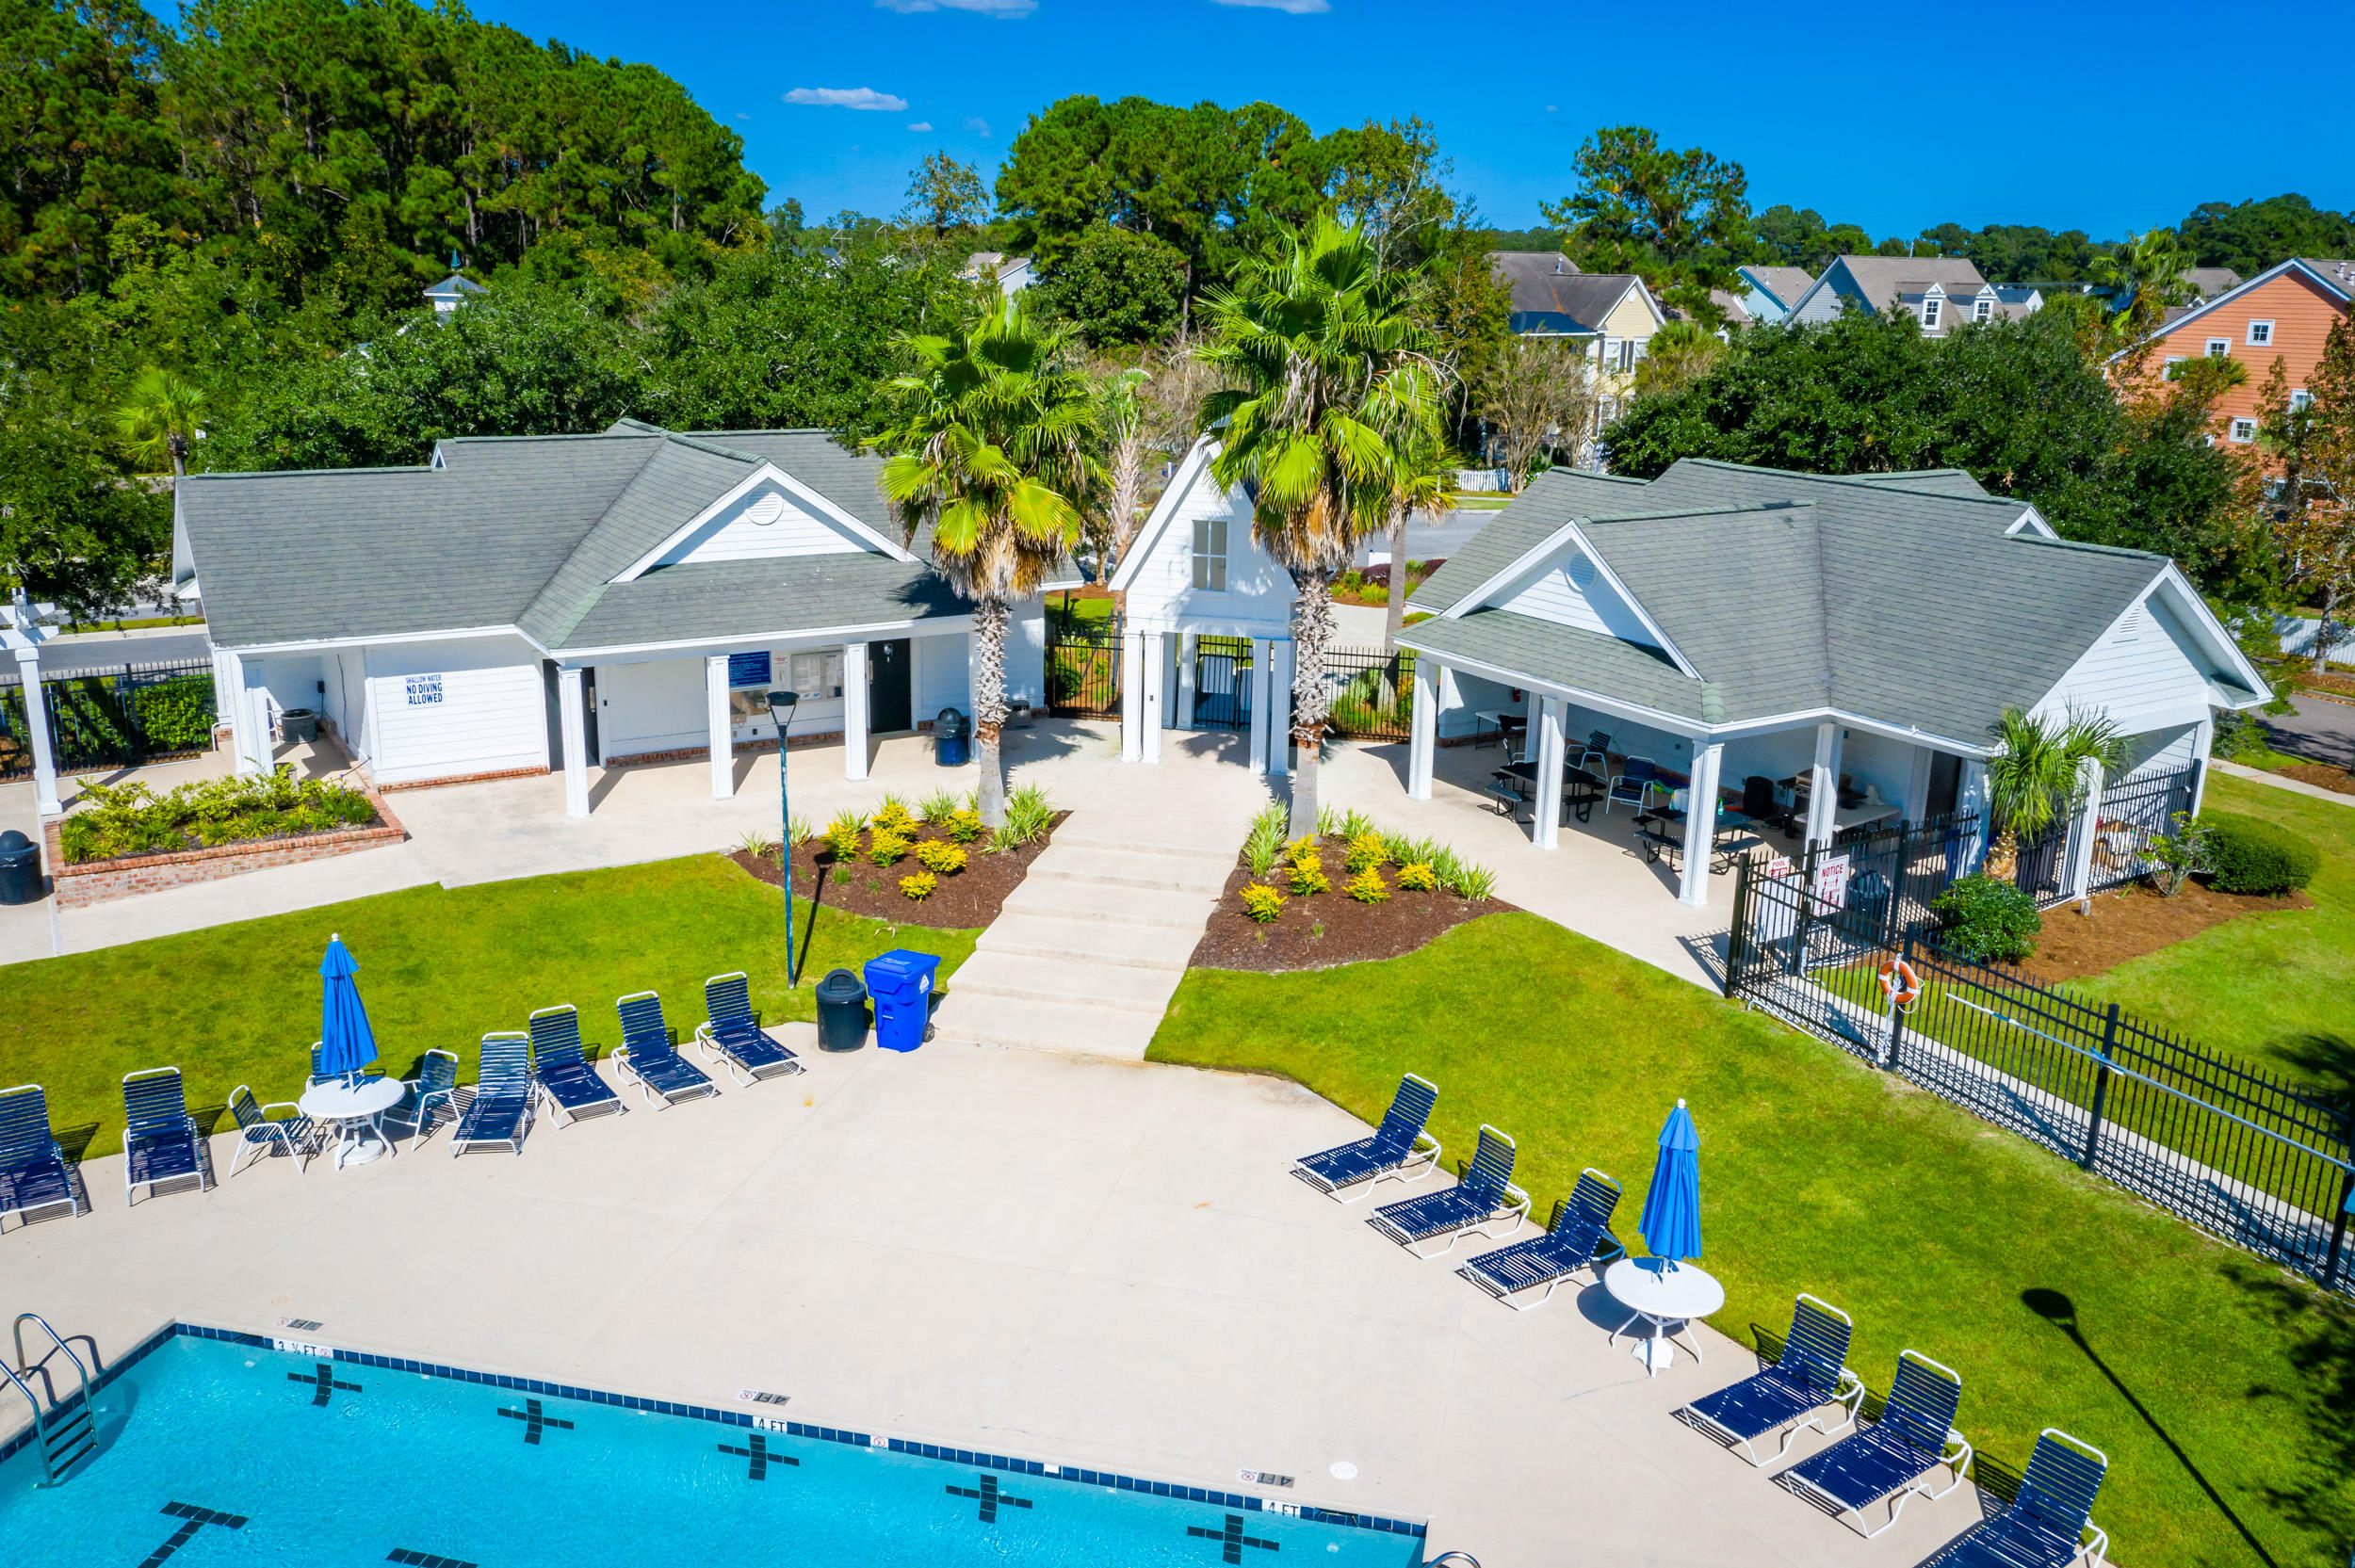 Rivertowne On The Wando Homes For Sale - 2268 Hartfords Bluff, Mount Pleasant, SC - 1